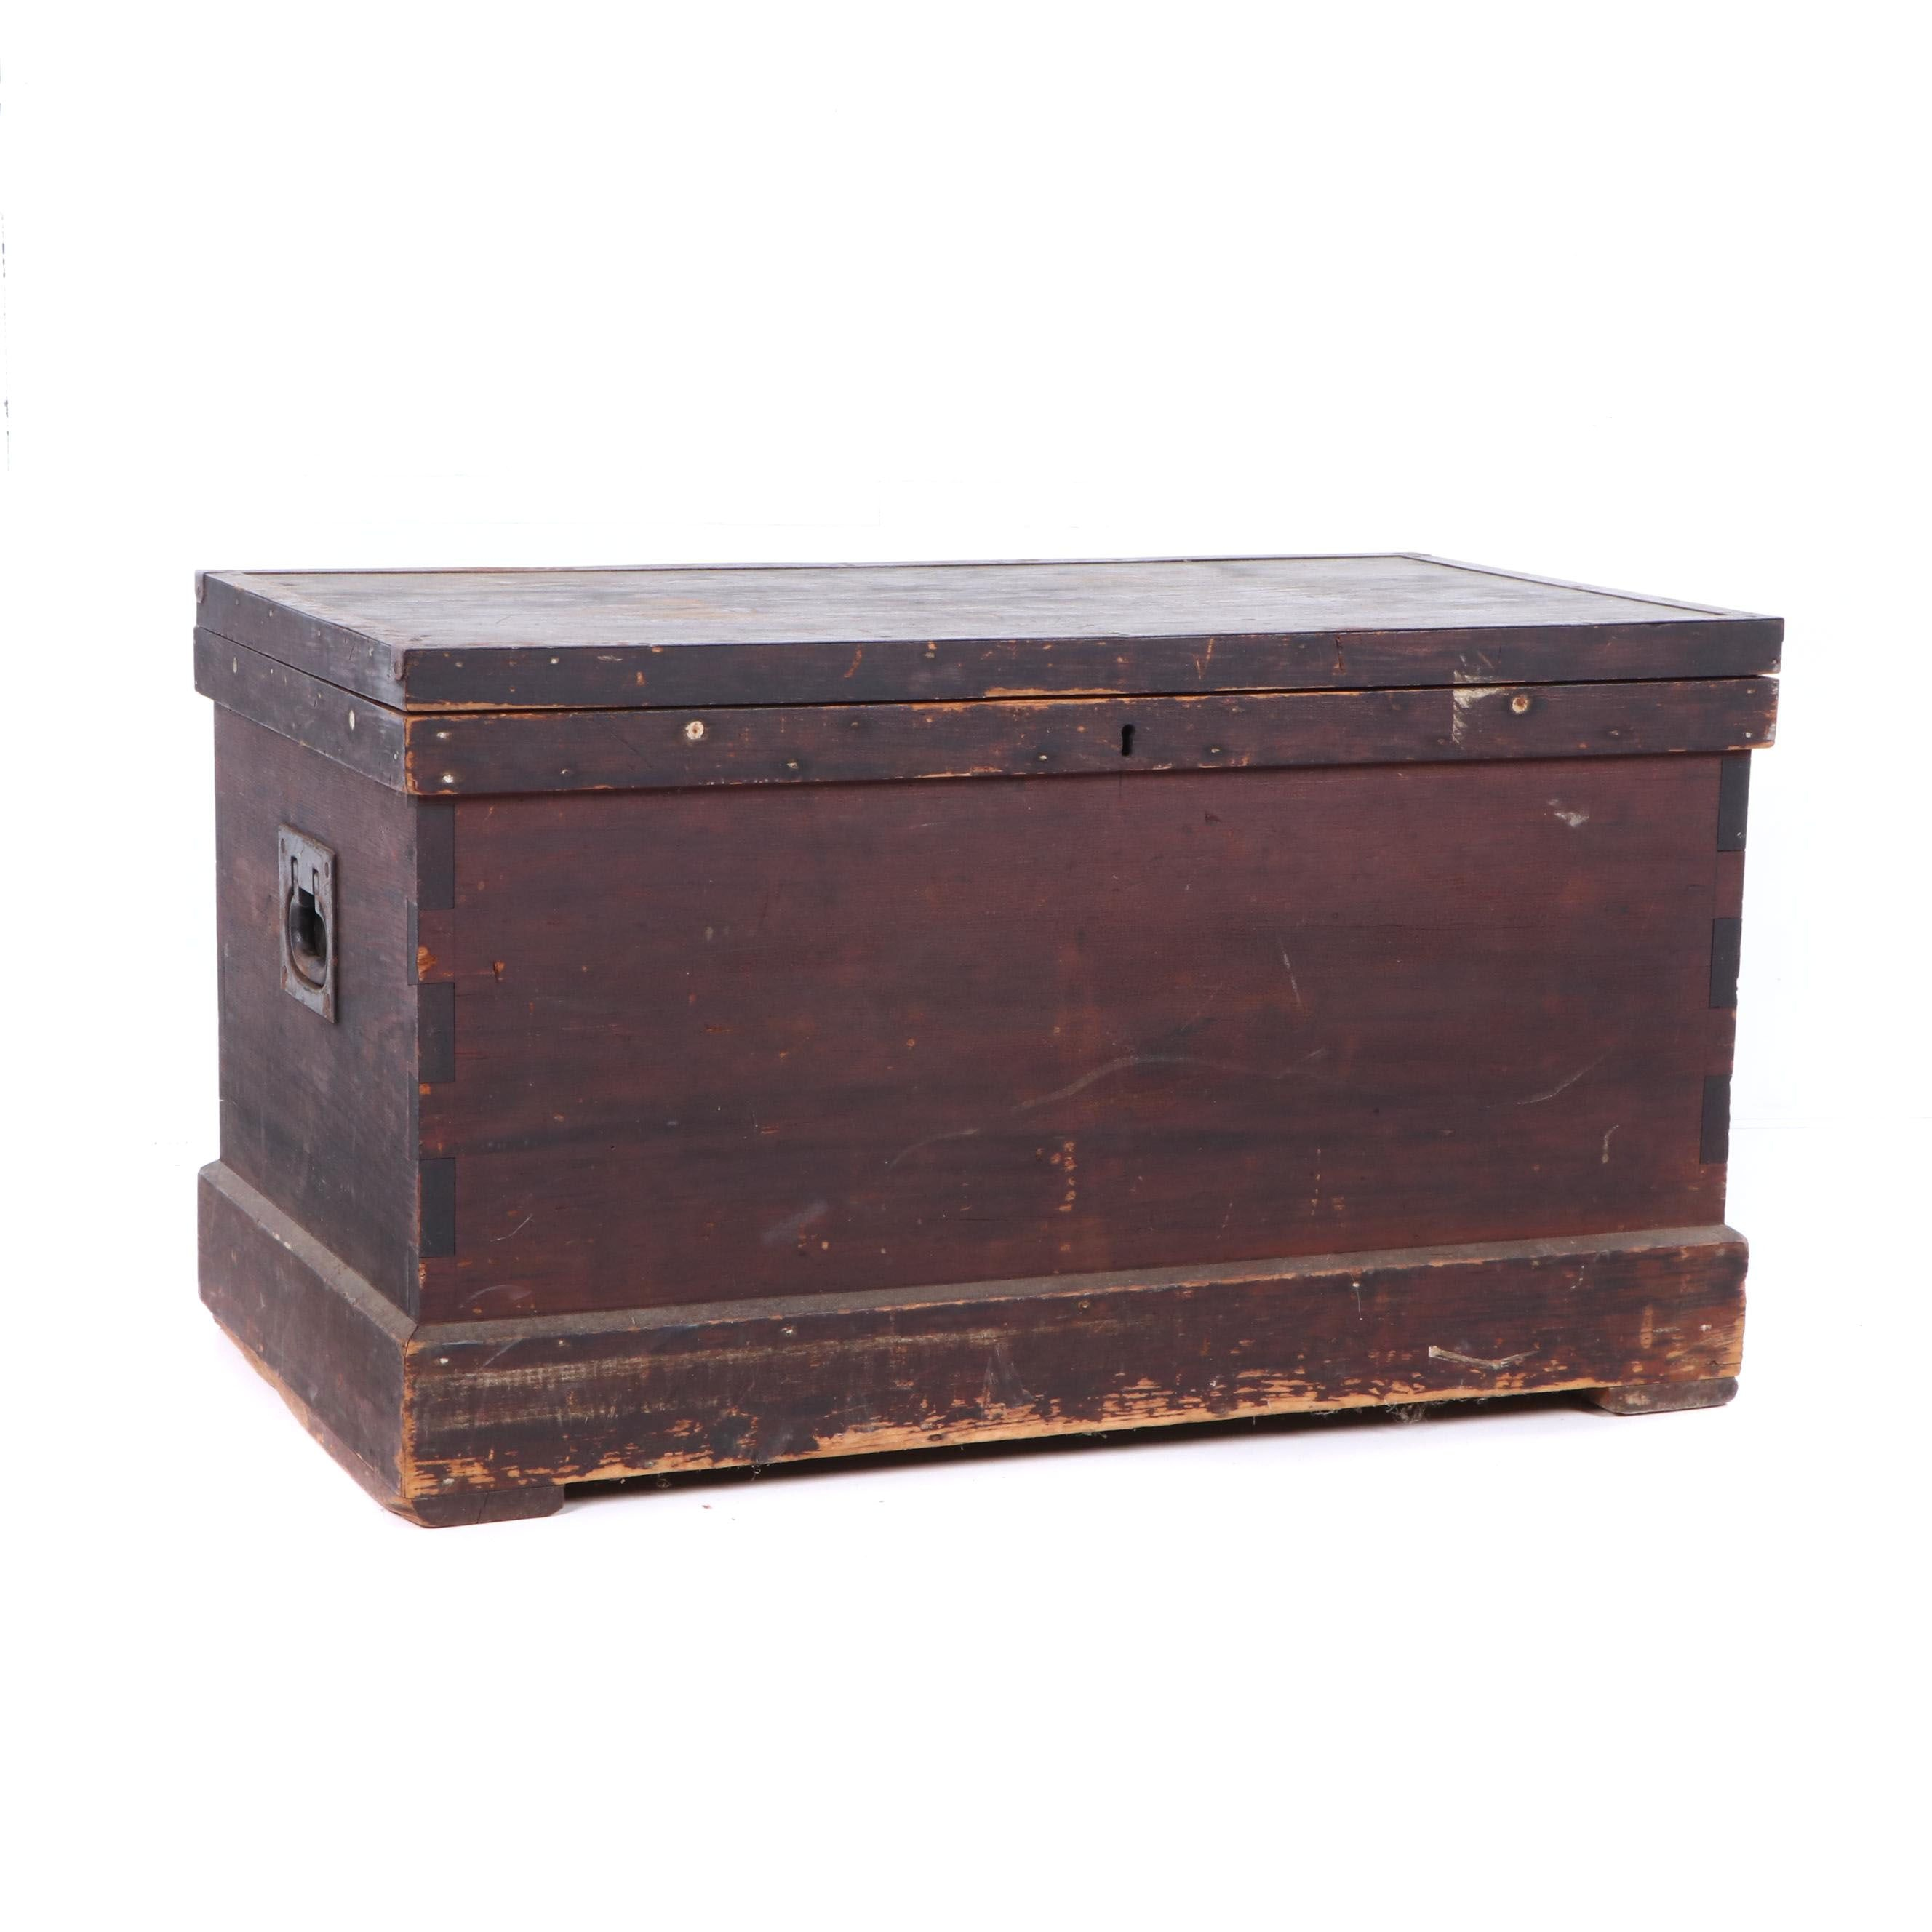 Mahogany Tool Chest by Allen & Noble, Early 19th Century